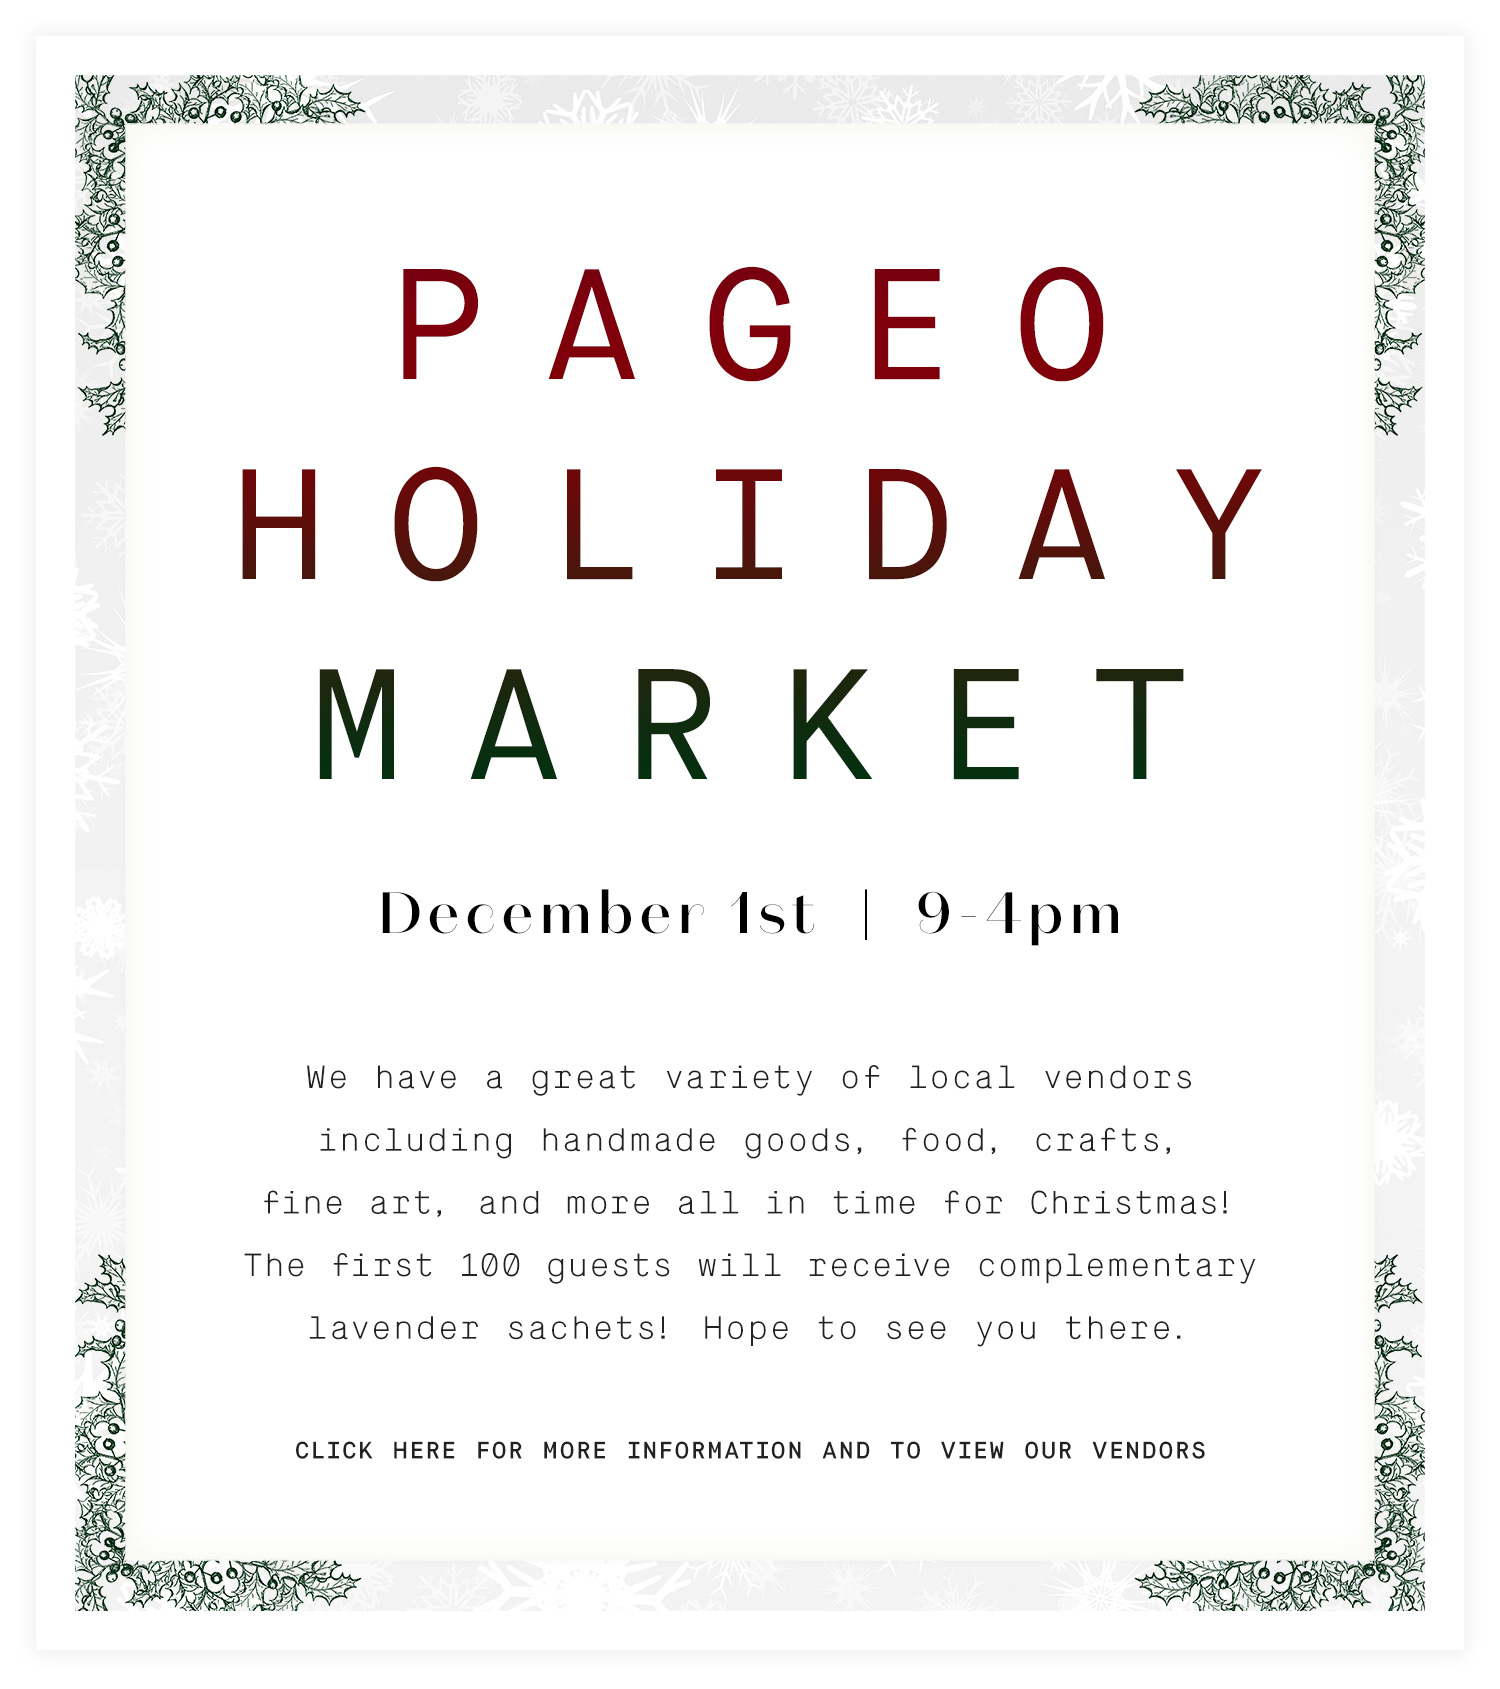 Pageo Holiday Market